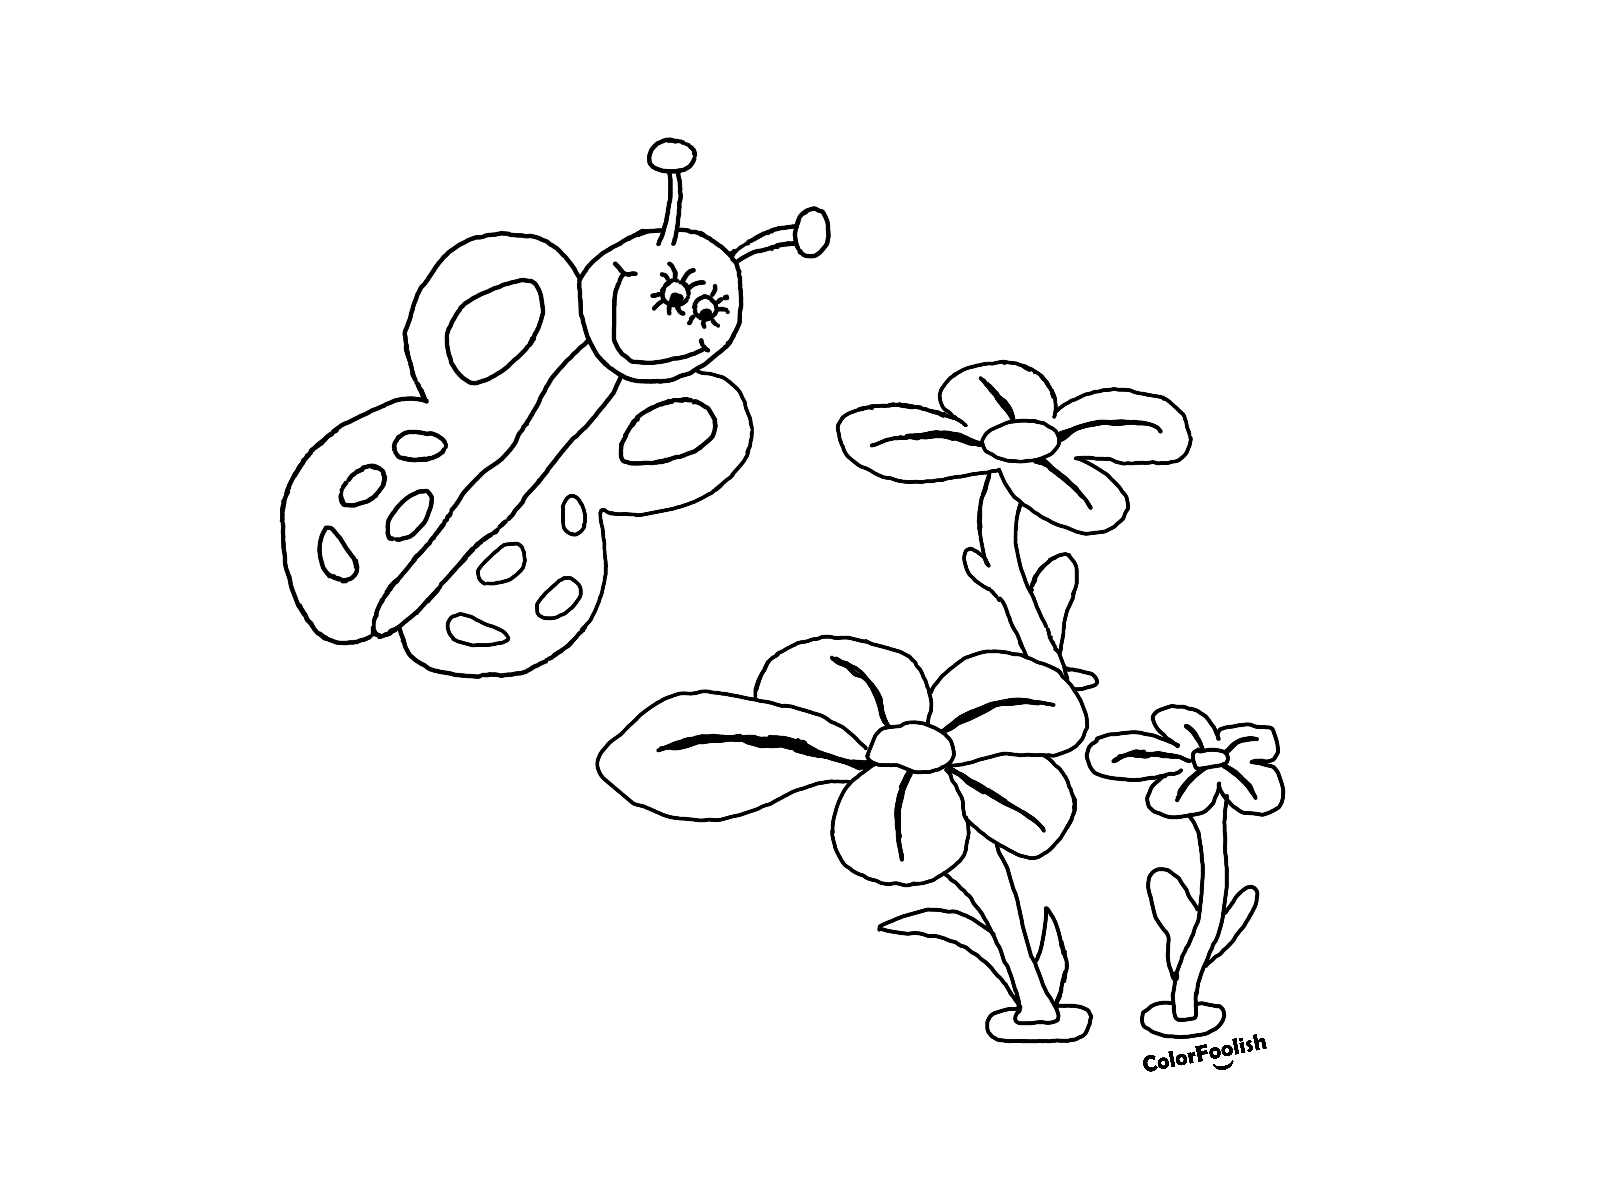 Coloring page of a butterfly that smells flowers